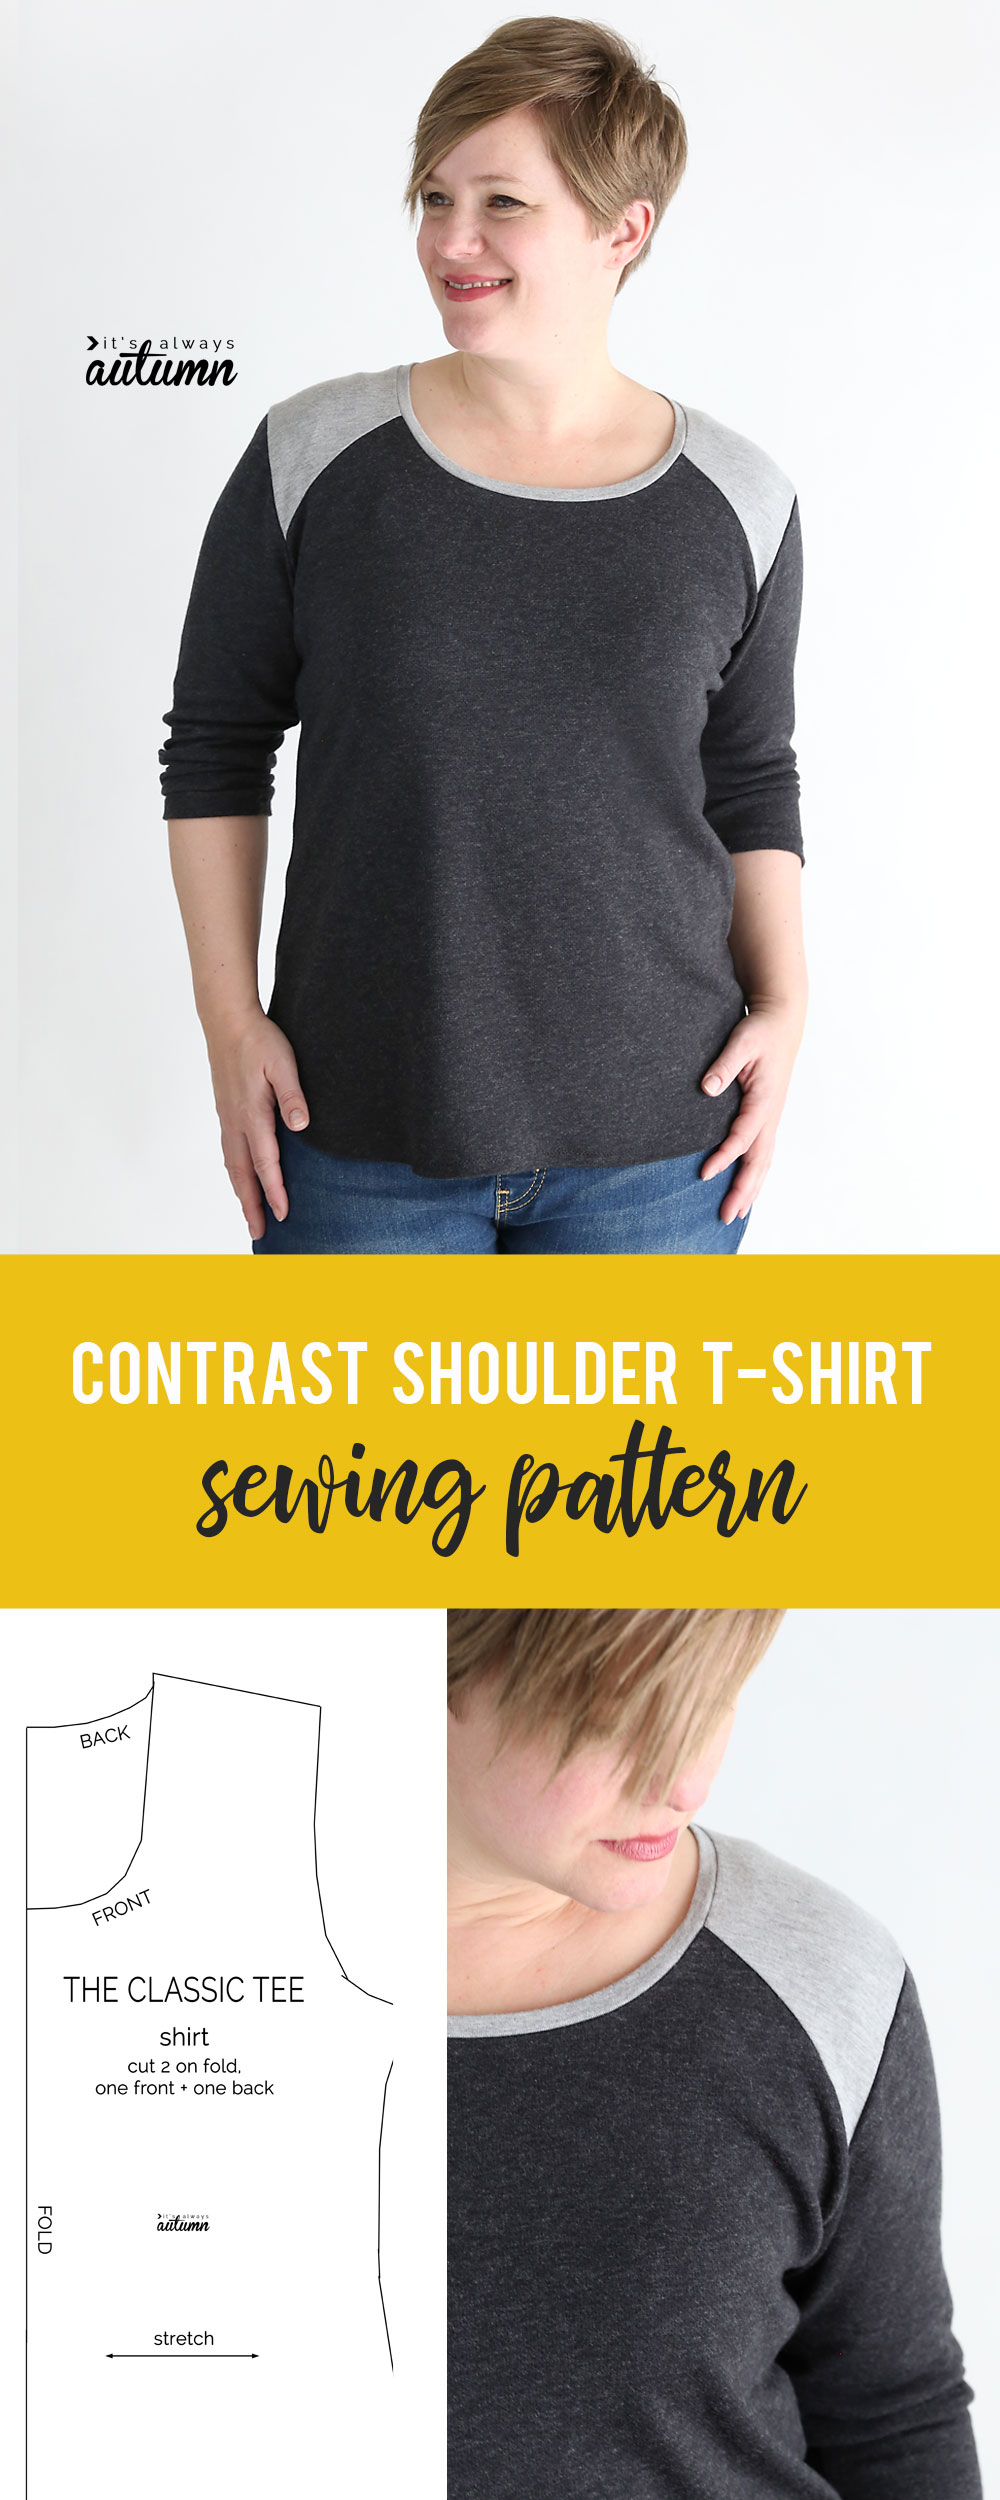 How to sew a women's t-shirt with a contrast shoulder. Easy sewing tutorial.